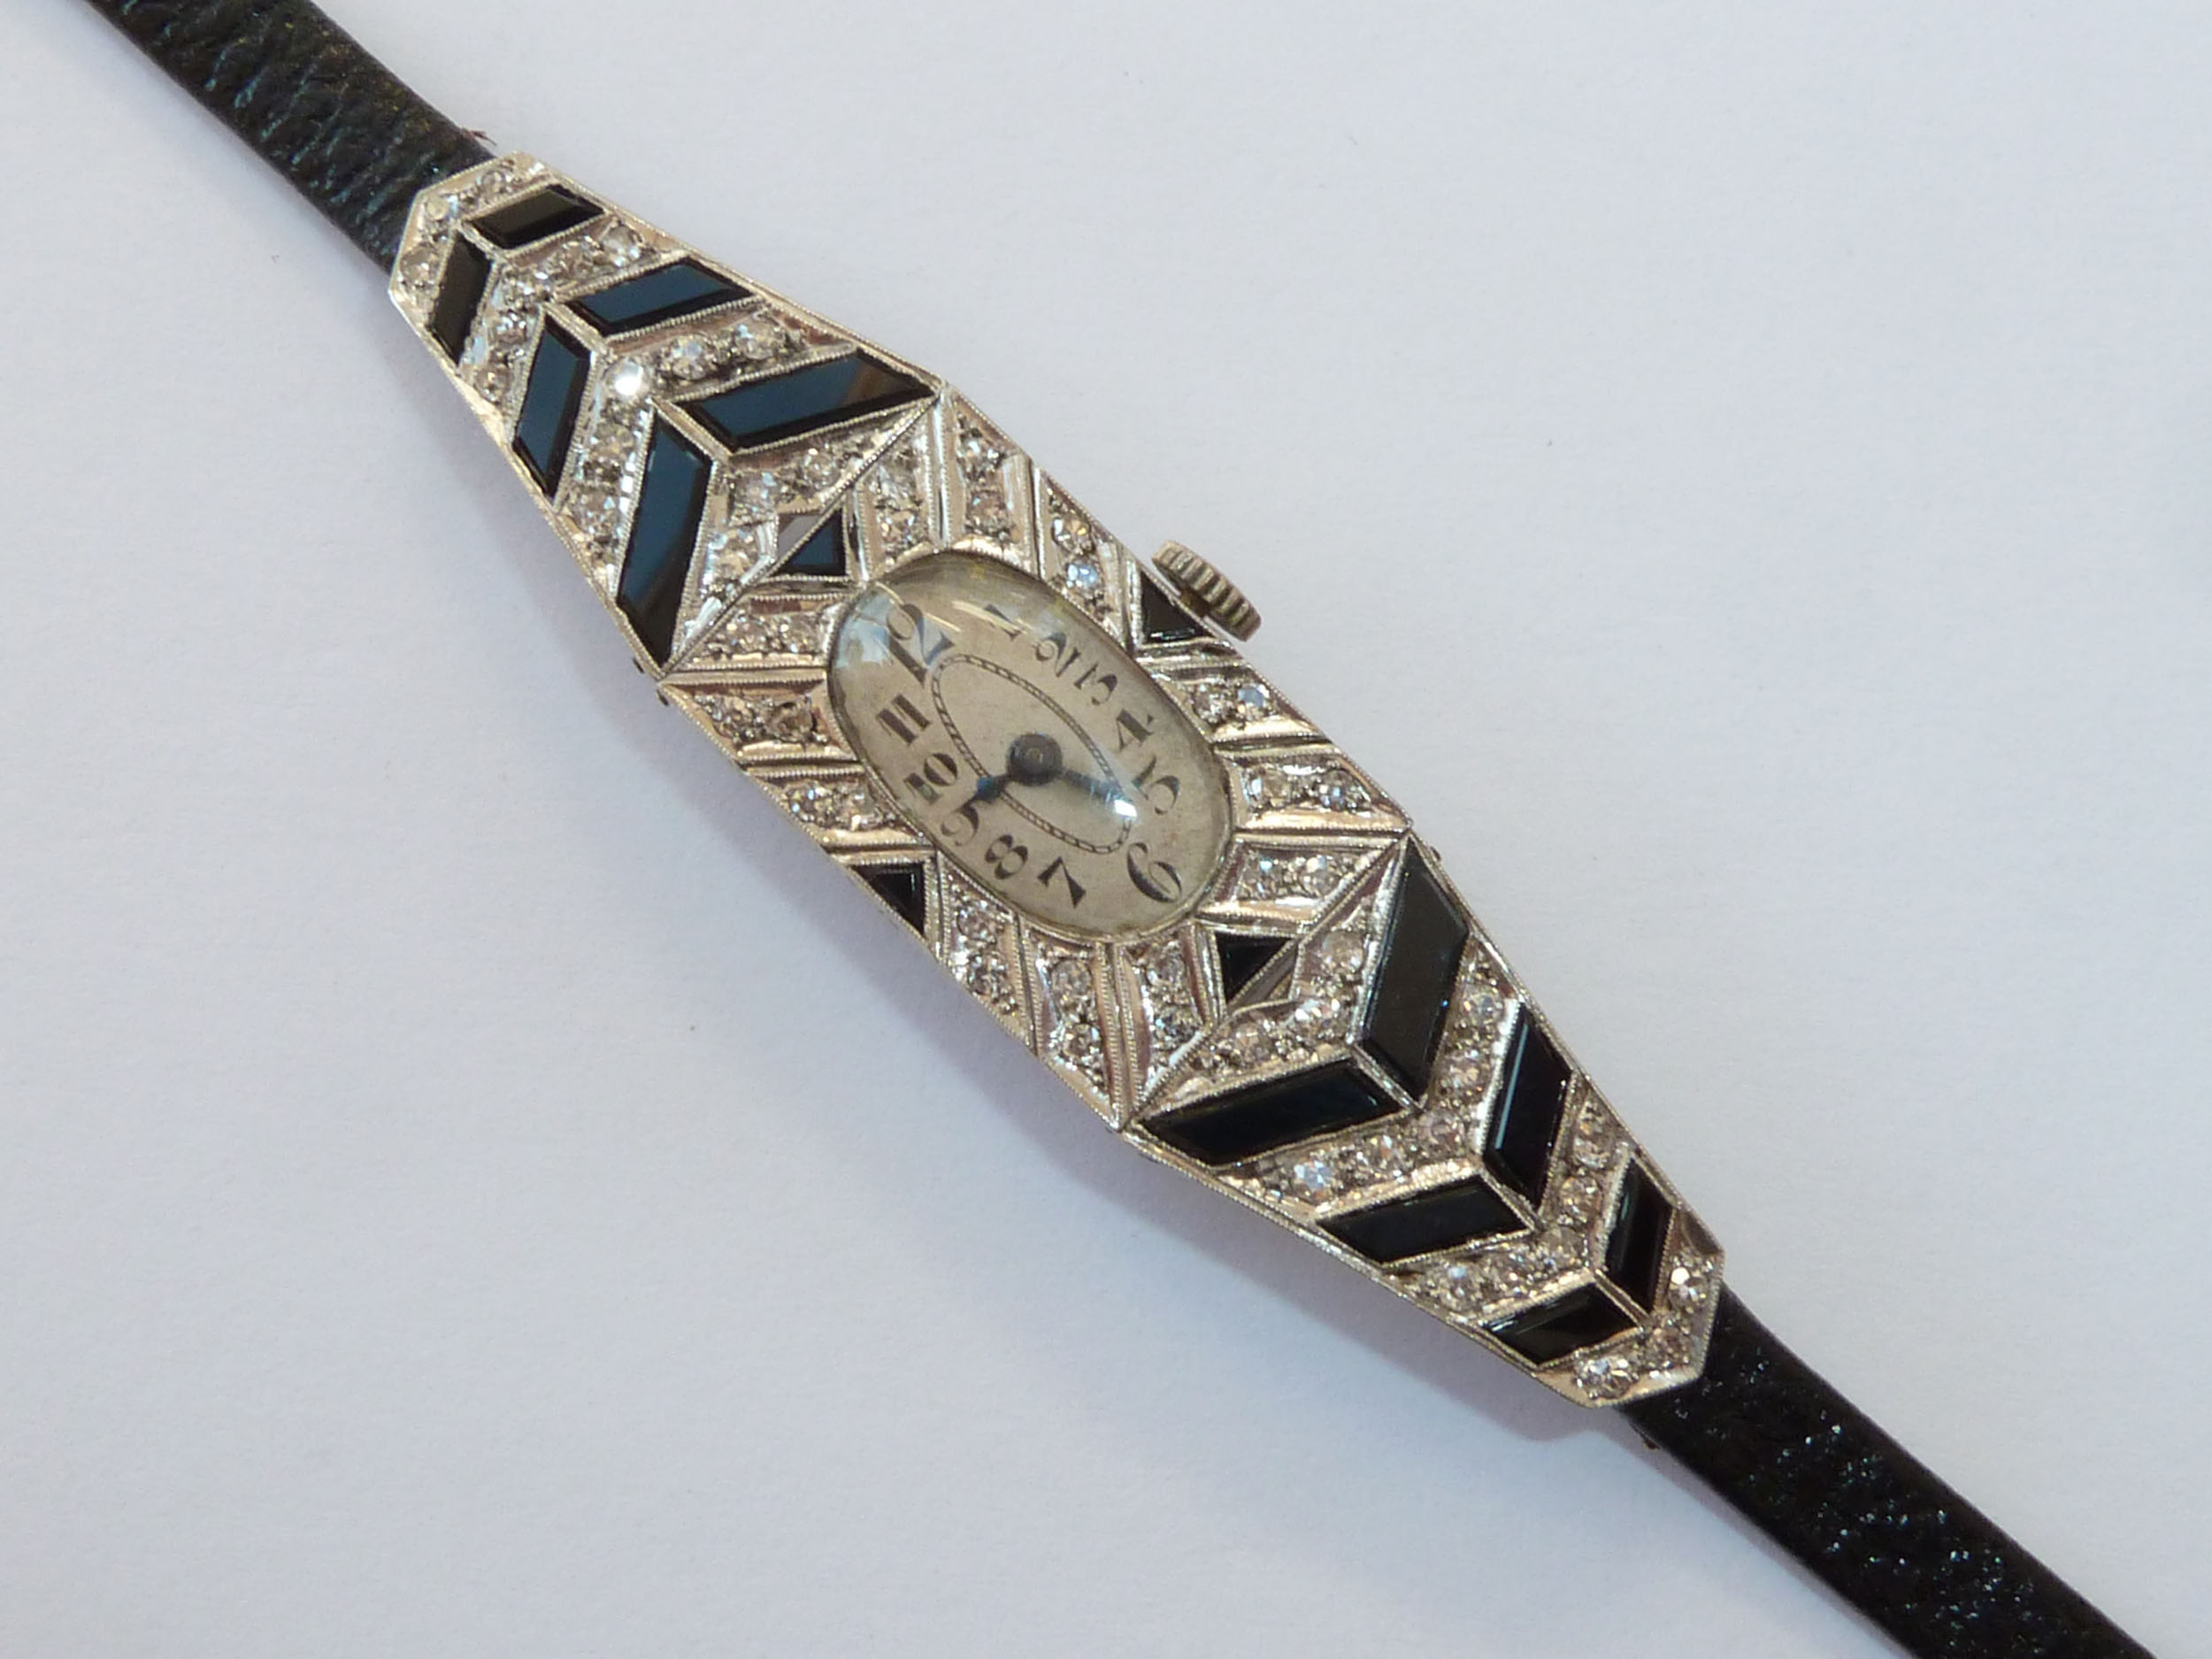 Art Deco watch, from T. Robert